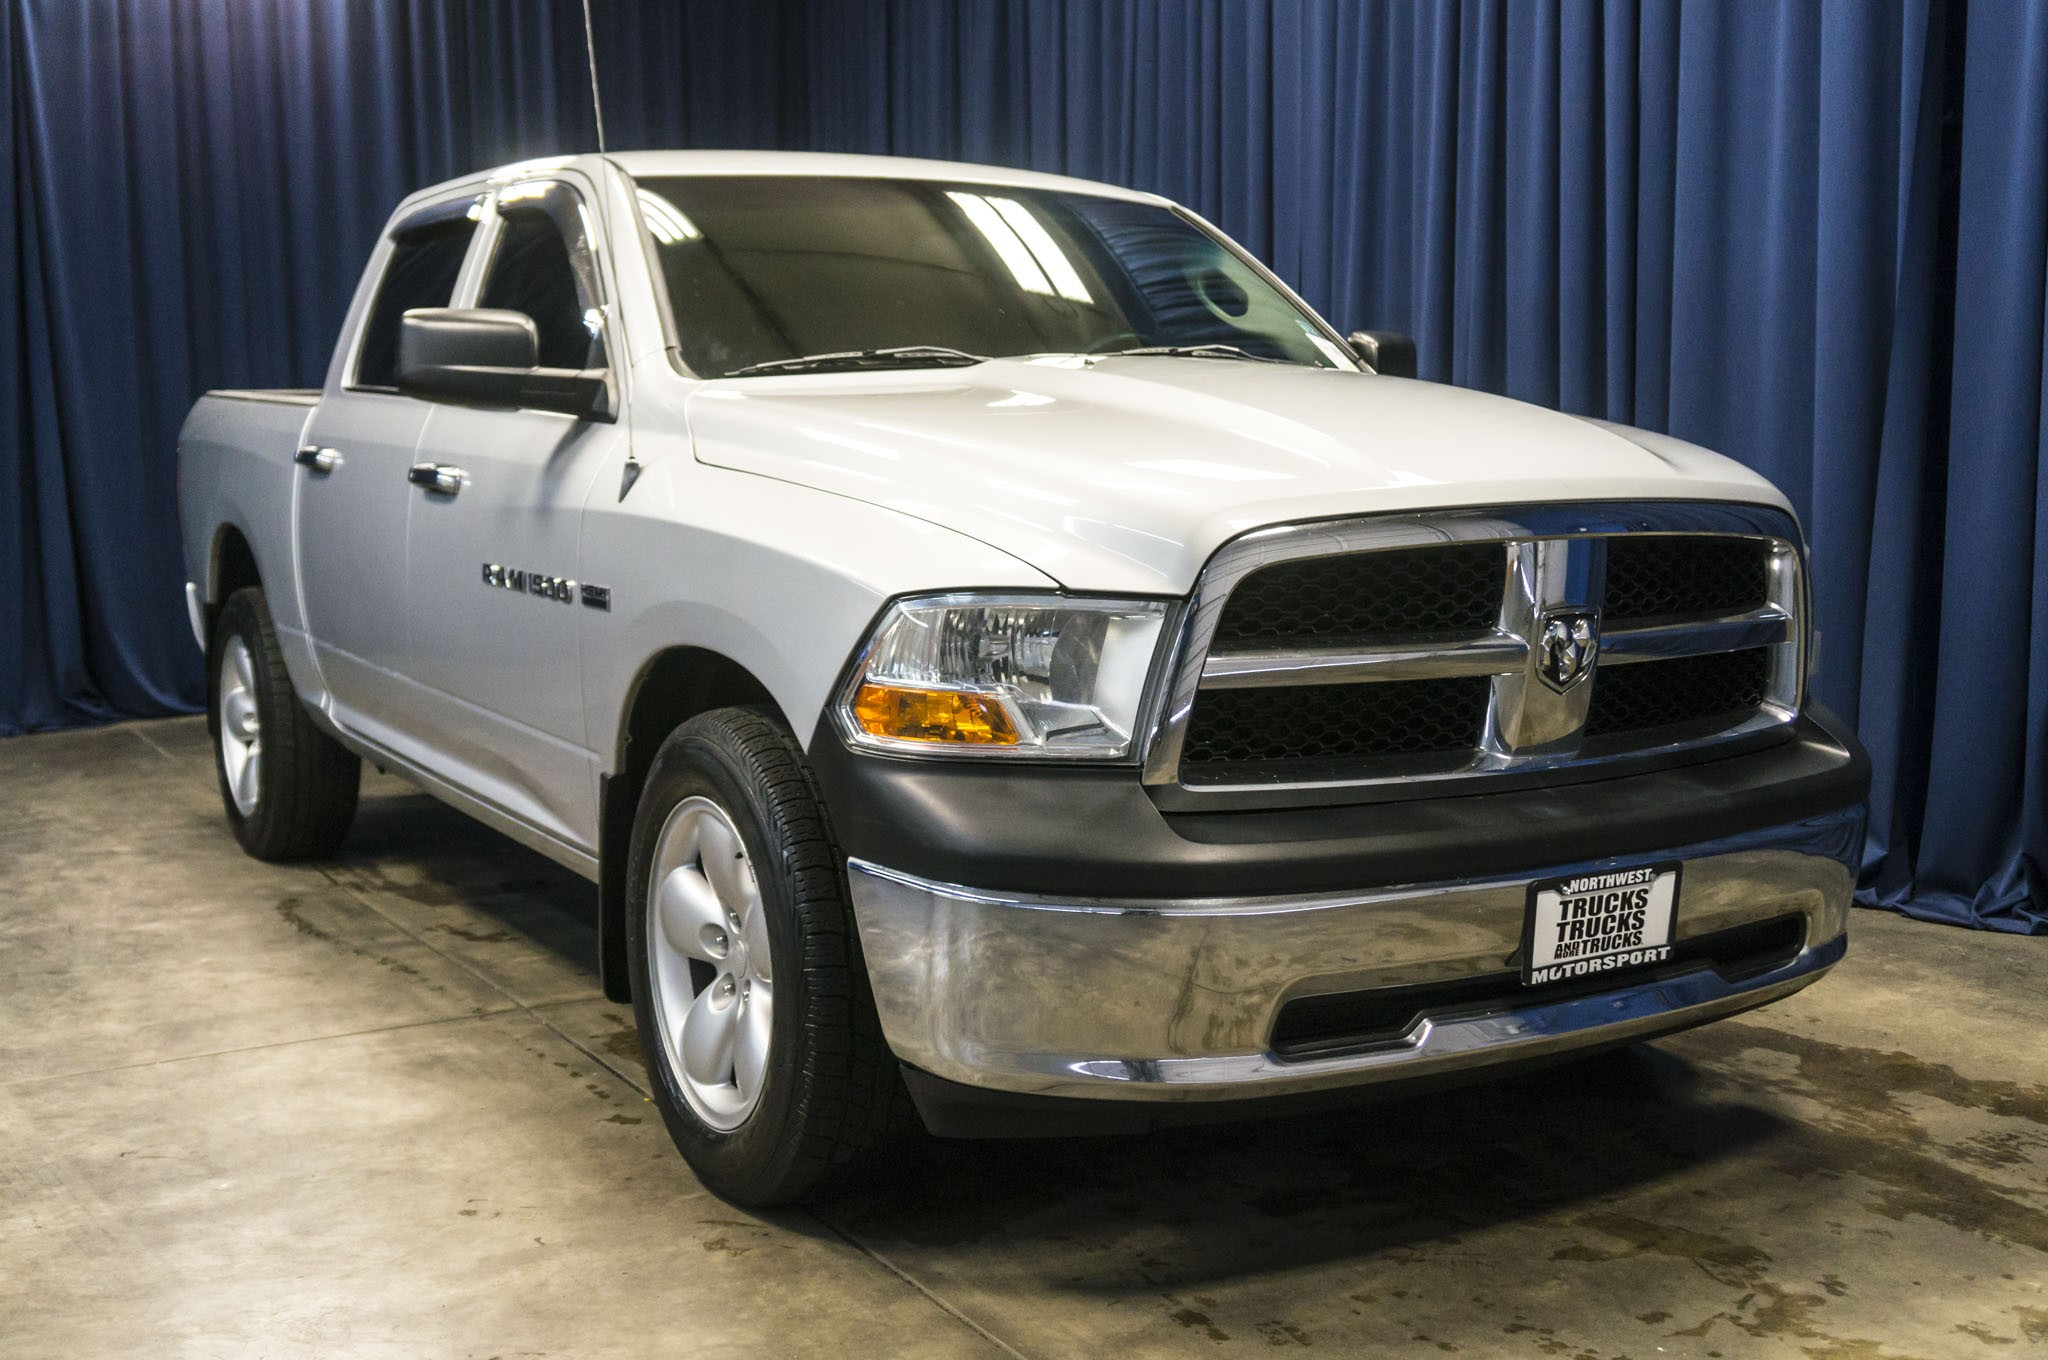 Dodge Trucks For Sale By Owner >> Used 2011 Dodge Ram 1500 SLT 4x4 Truck For Sale - 41584